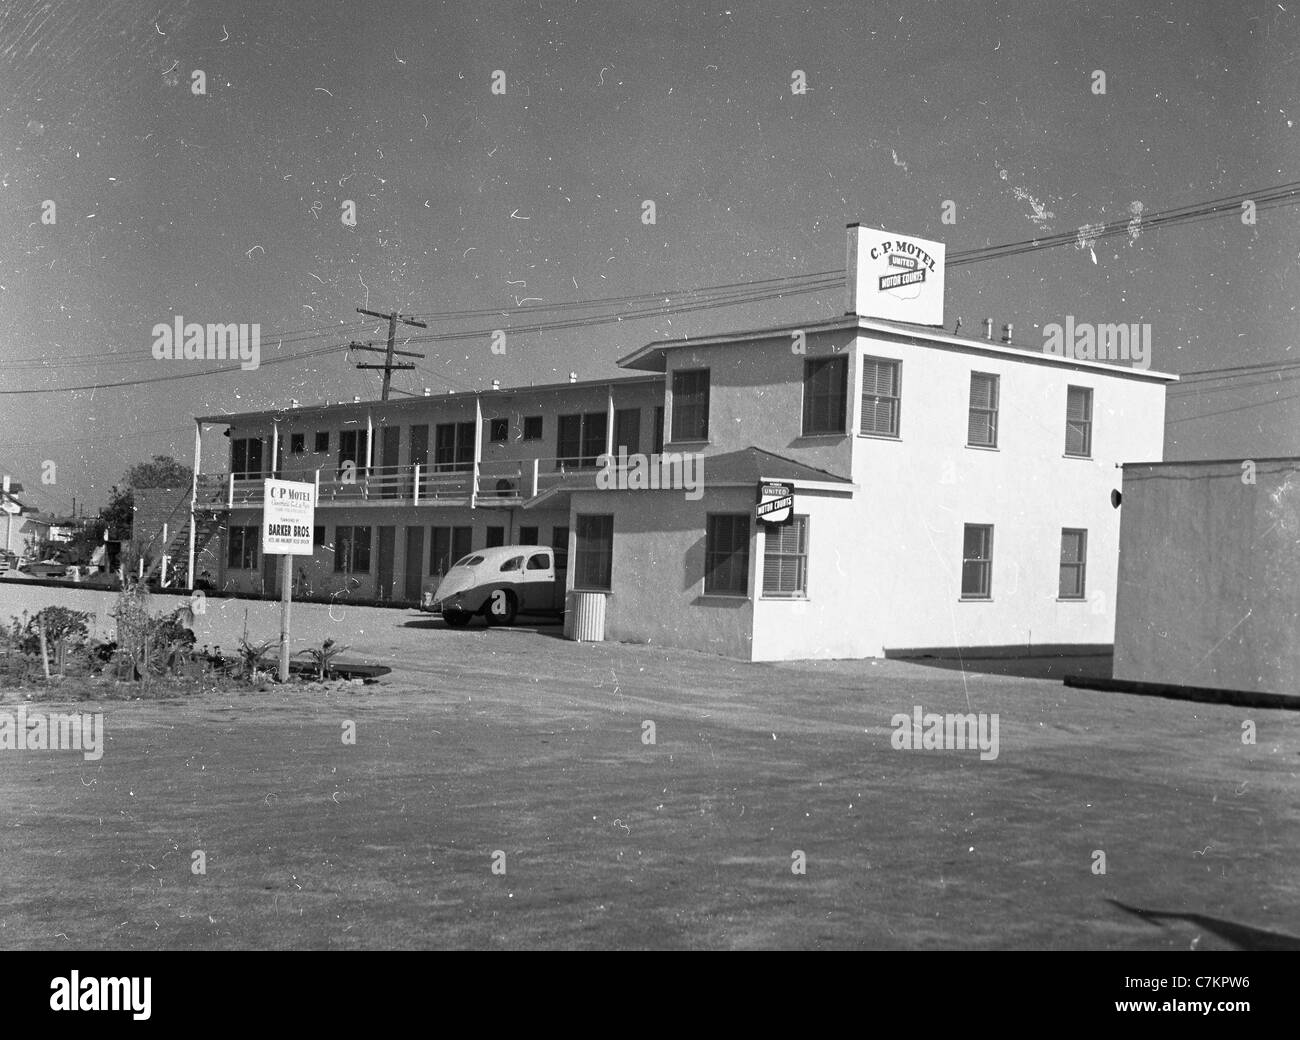 roadside motel two story 1930s southwest united states architecture travel lodging hotel C.P. - Stock Image